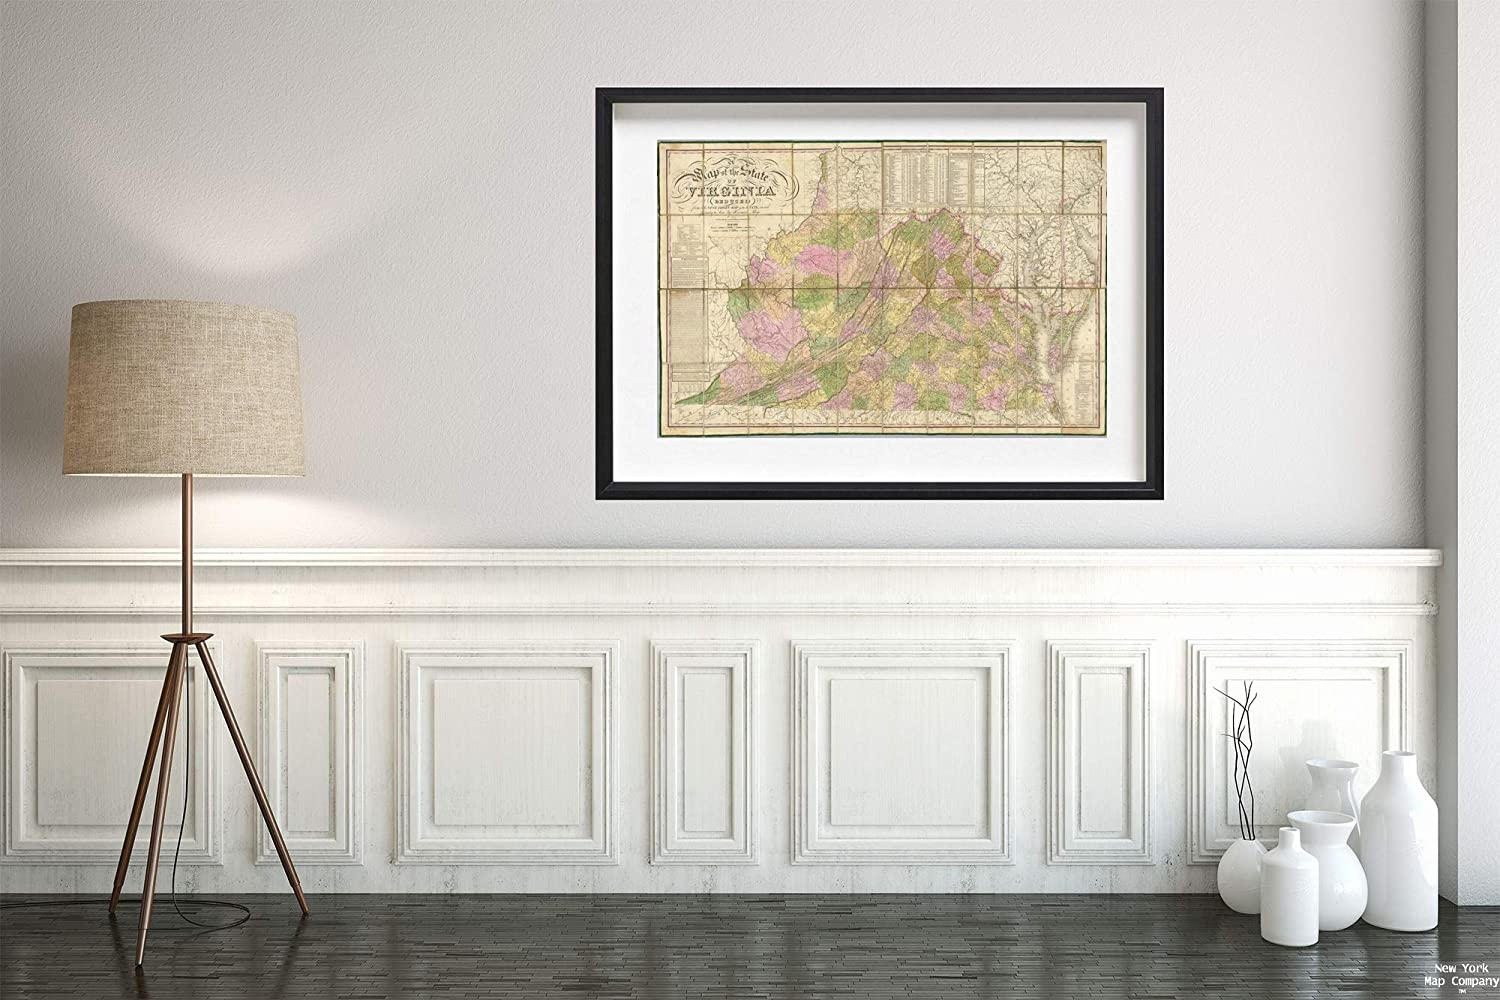 Map|A of The State of Virginia 1827|Historic Antique Vintage Reprint|Size: 16x24|Ready to Frame